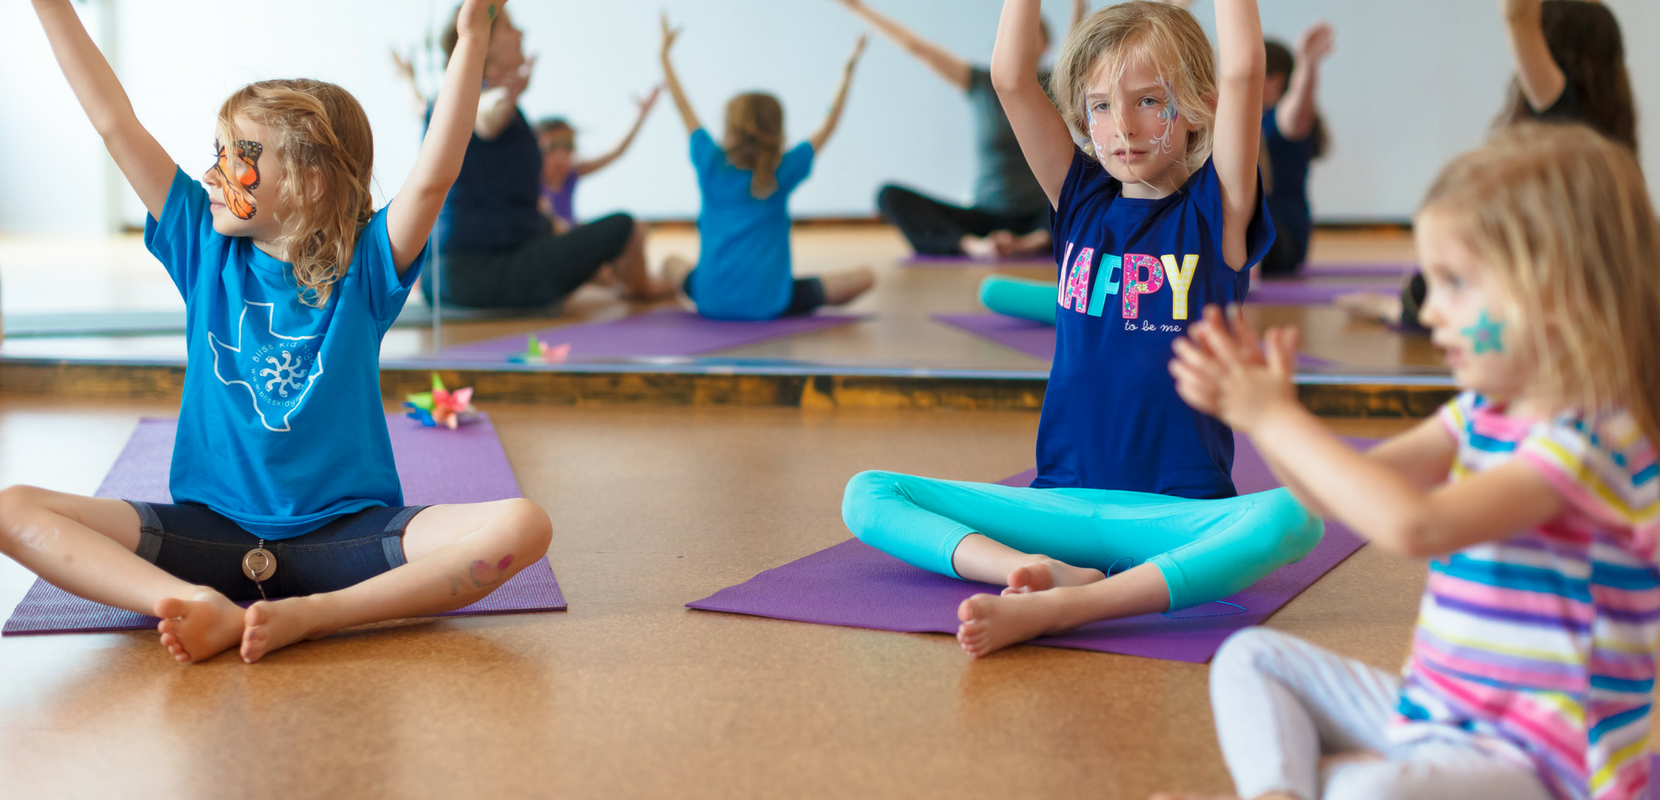 Who is Bliss Kid Yoga?